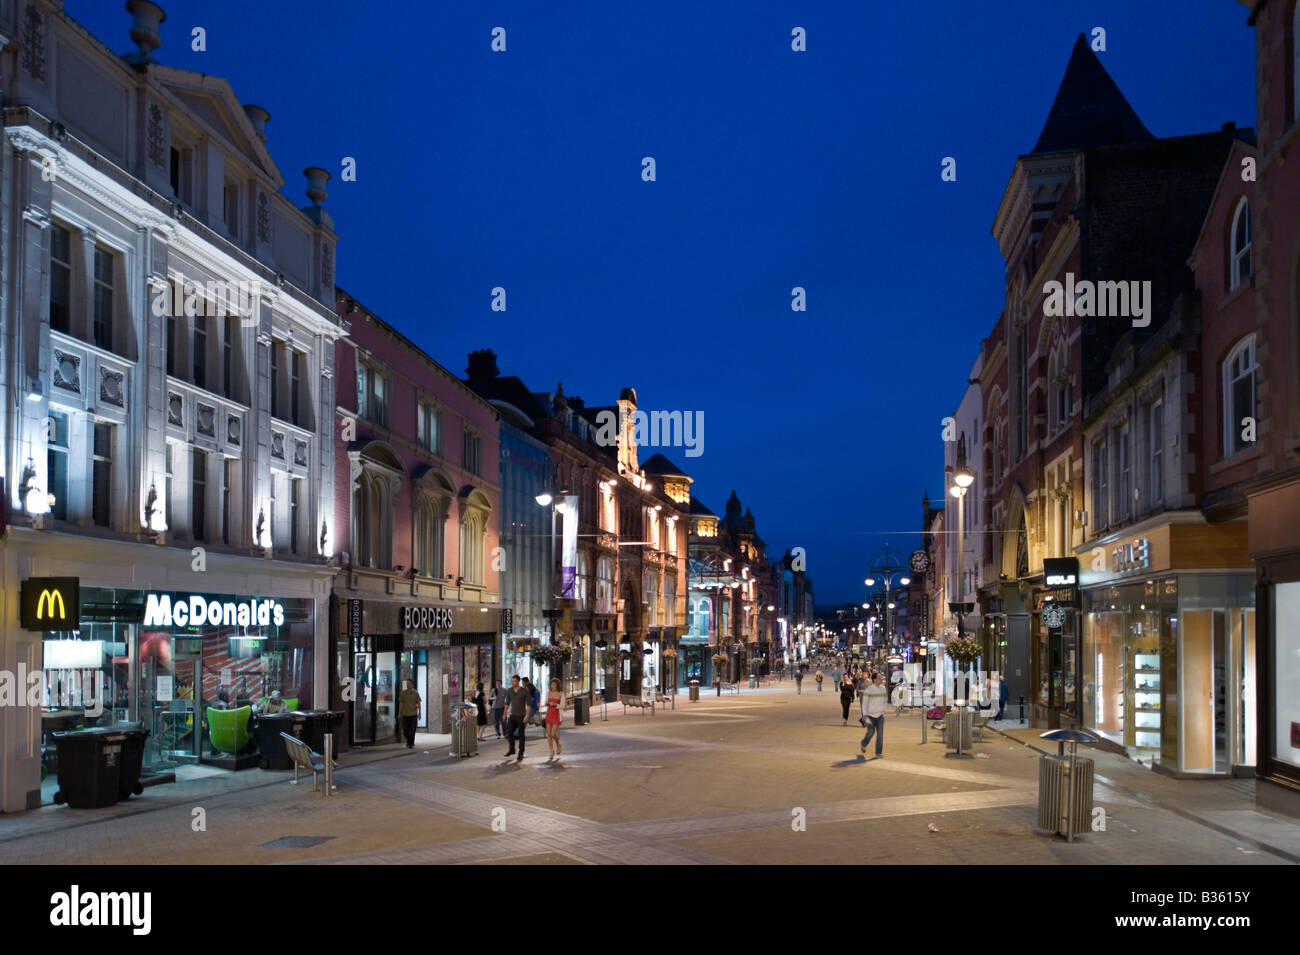 Briggate (the main shopping street) at night in the city centre, Leeds, West Yorkshire, England - Stock Image